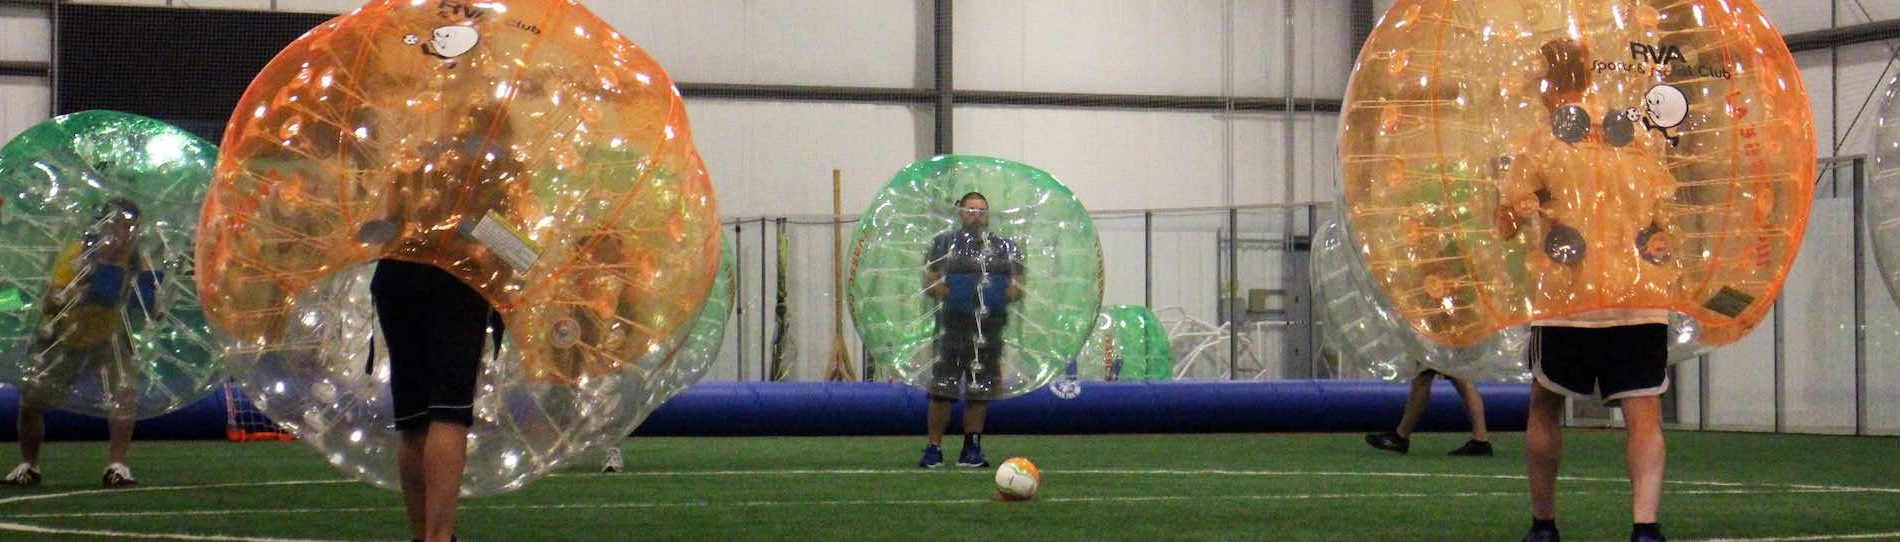 sydney bubble soccer indoor or outdoor